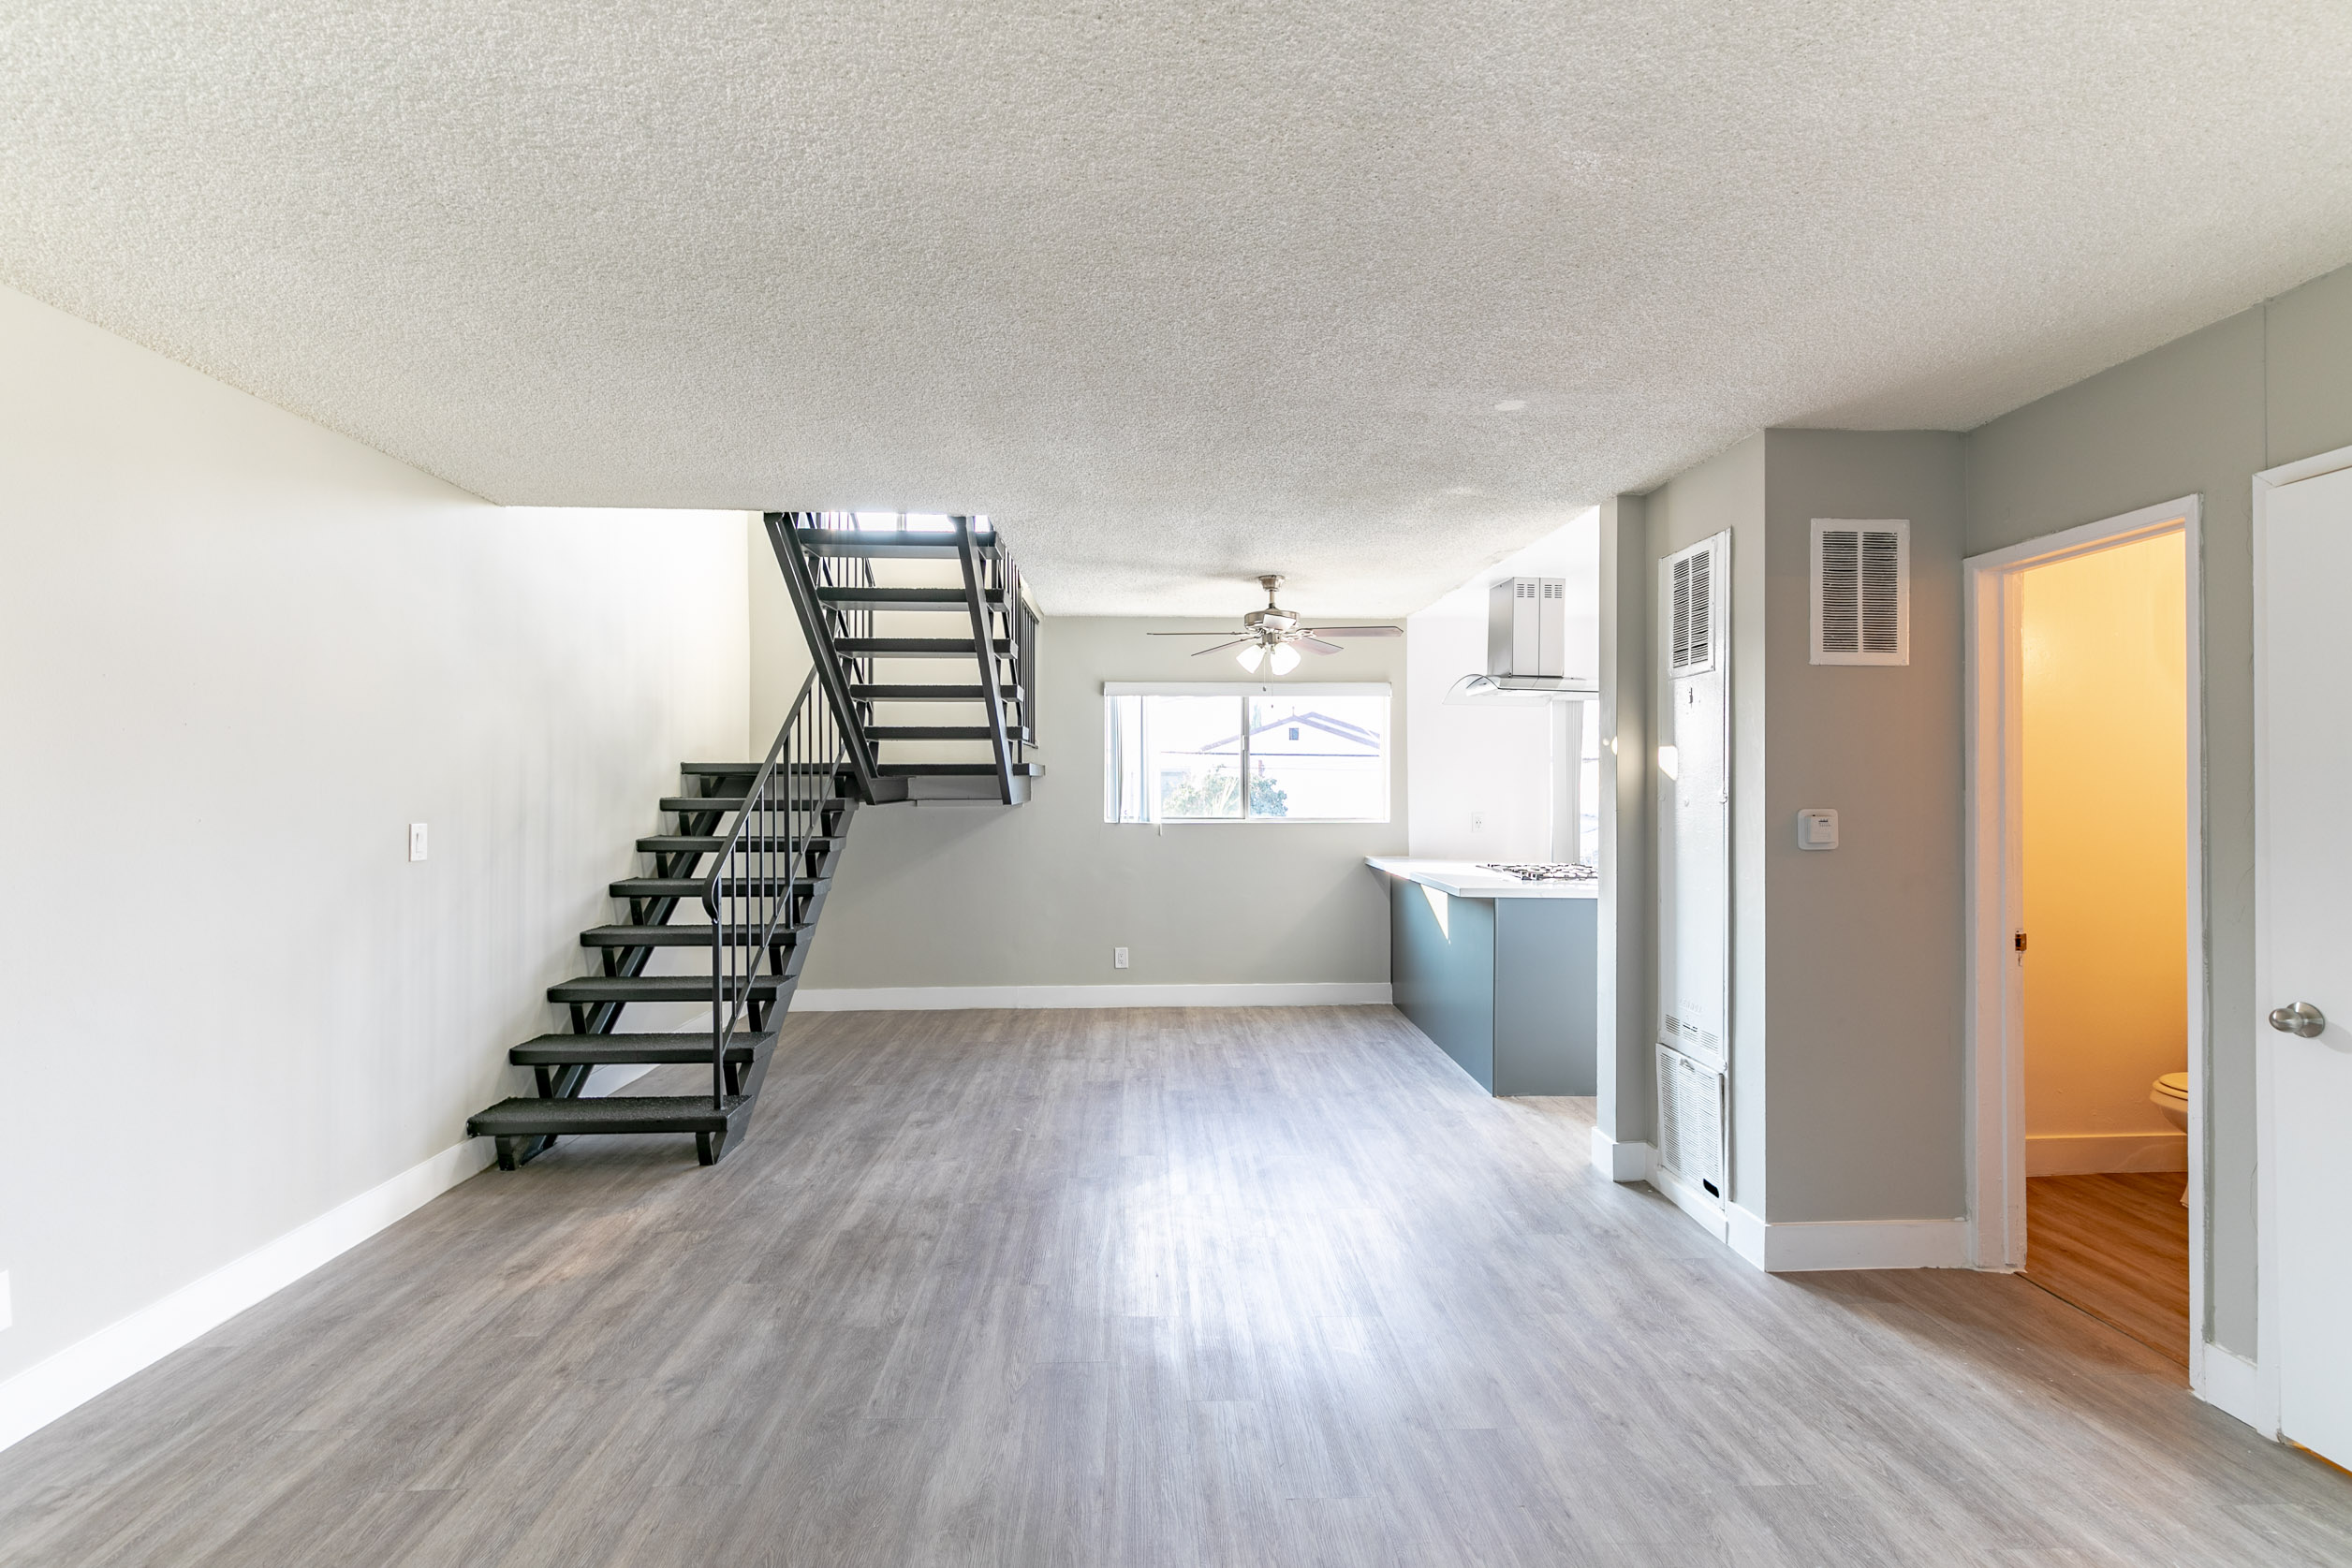 Super Sleek and Modern! 2 Bed/1.5 Bath | Balcony | Washer/Dryer| Close to Santa Monica and Beverly Hills